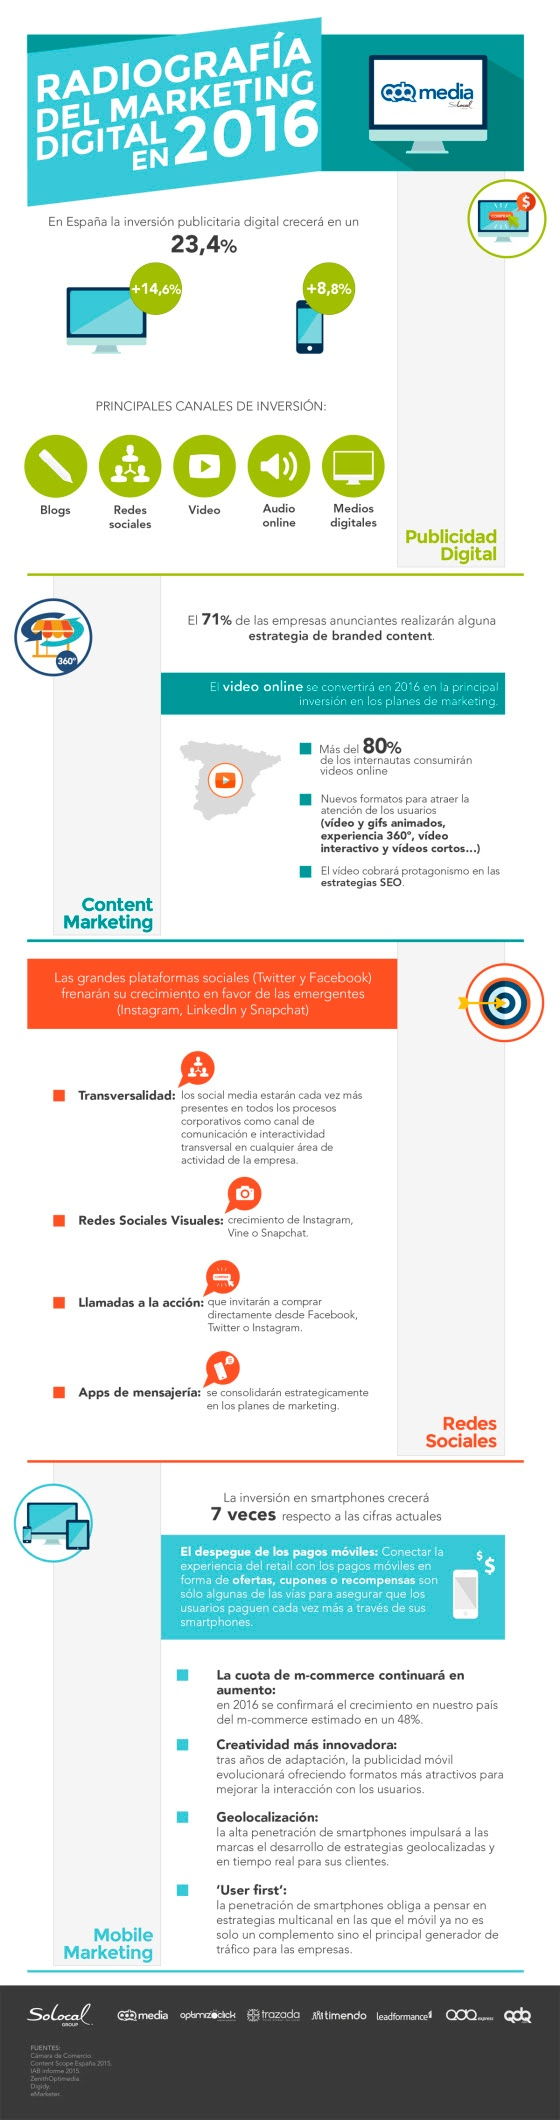 INFOGRAFIA__Radiografia_del_Marketing_Digital_en_Espana_2016.jpg